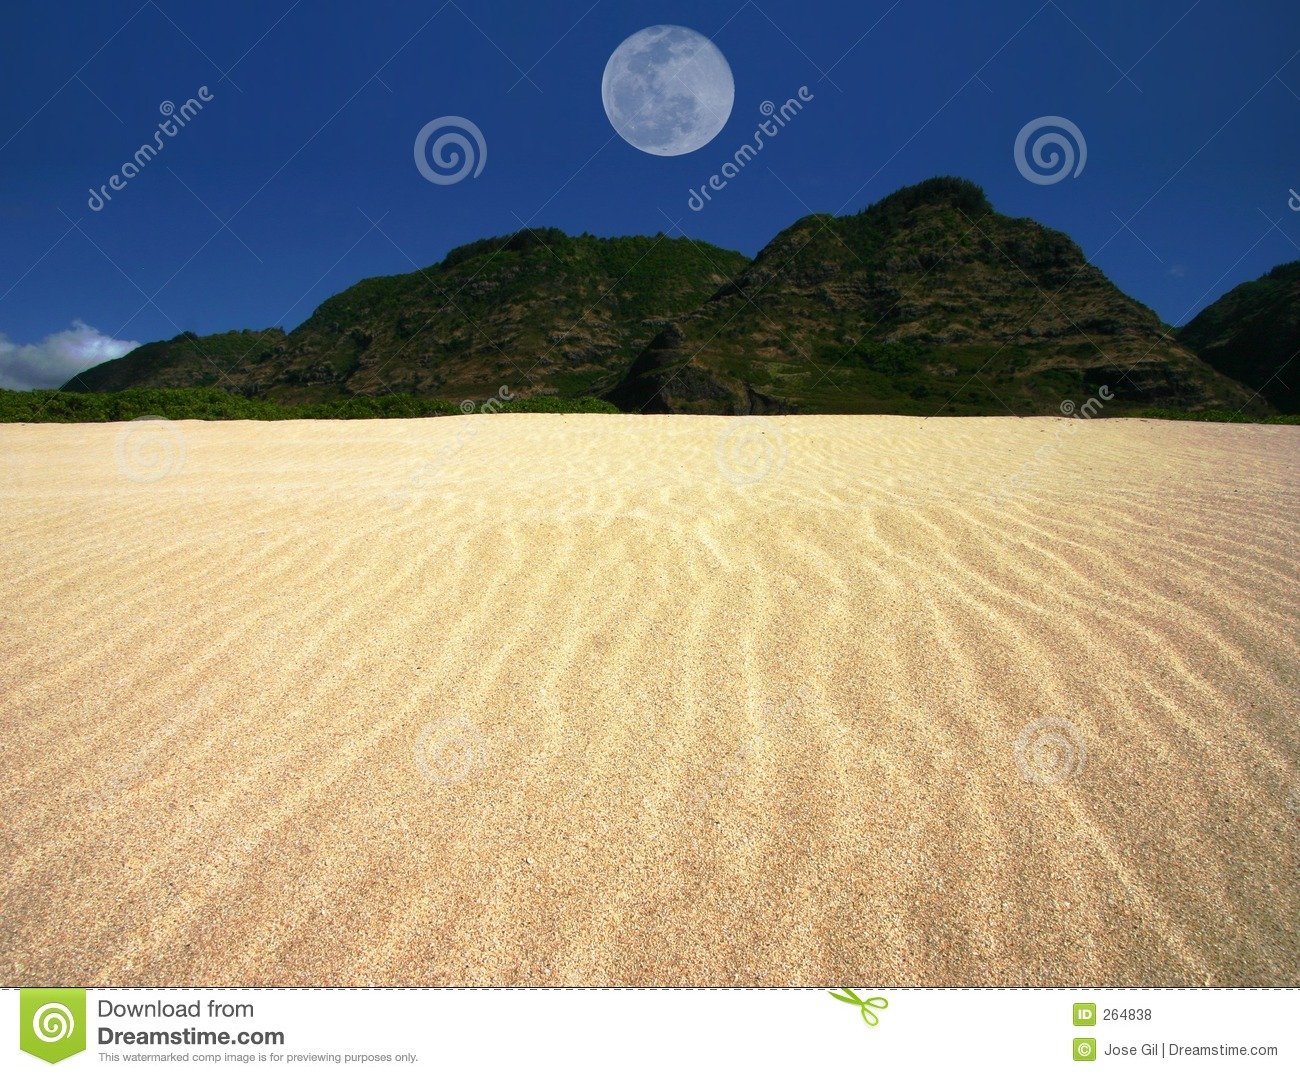 Landscaping Over Sand : Rippled sand landscape with centered moon royalty free